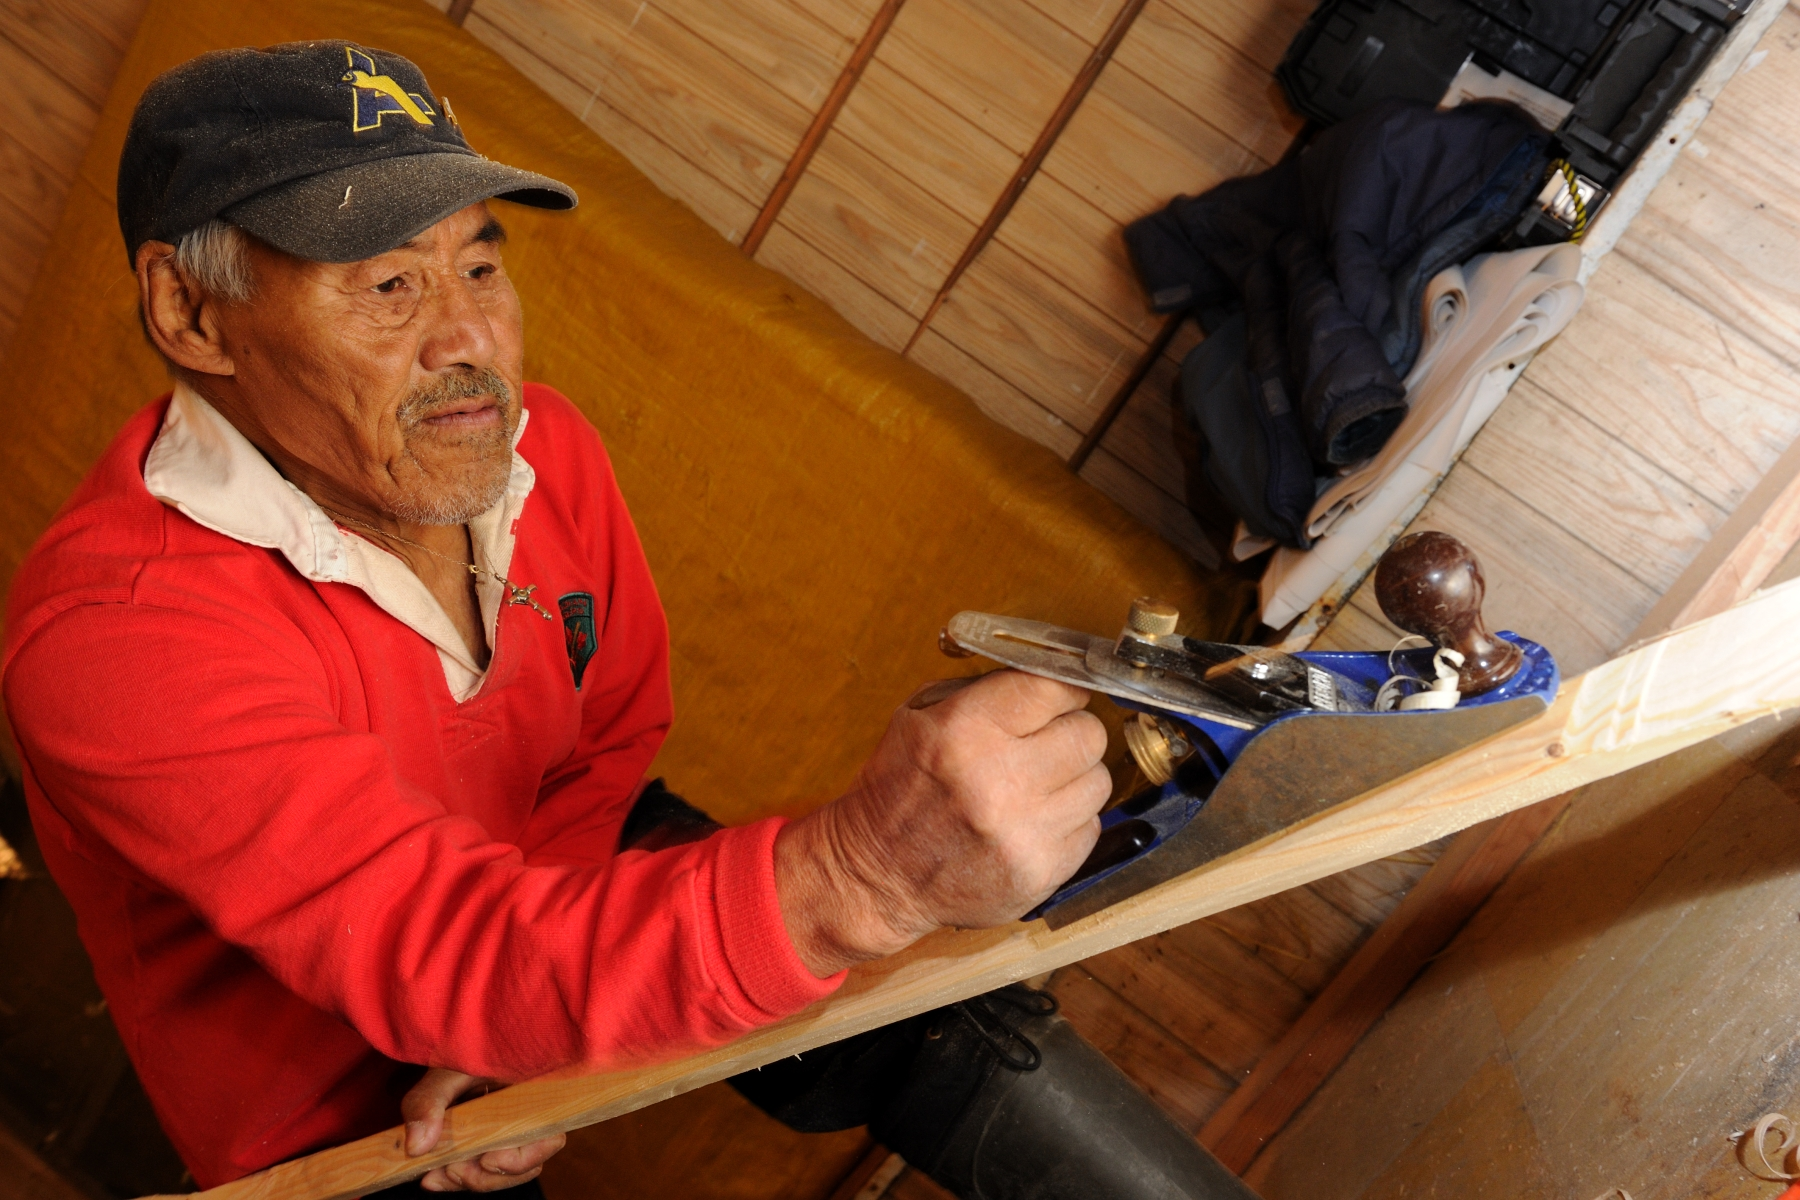 An elder member of the kayak-building workshop provided a demonstration on how to carve a paddle out of wood.